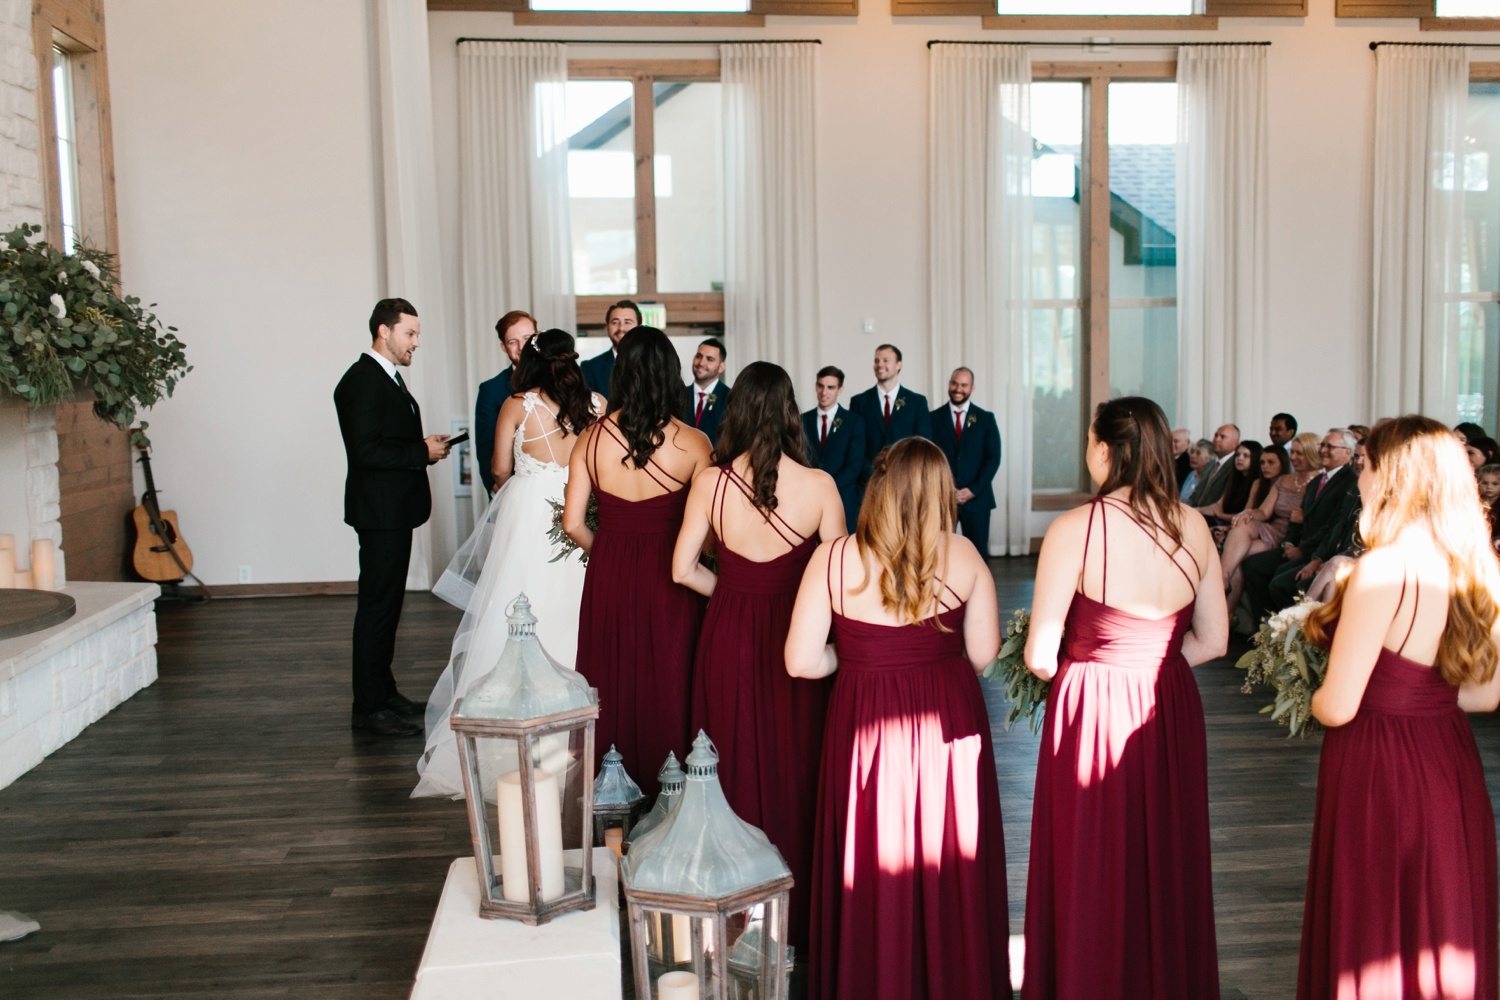 Grant + Lysette | a vibrant, deep burgundy and navy, and mixed metals wedding at Hidden Pines Chapel by North Texas Wedding Photographer Rachel Meagan Photography 078